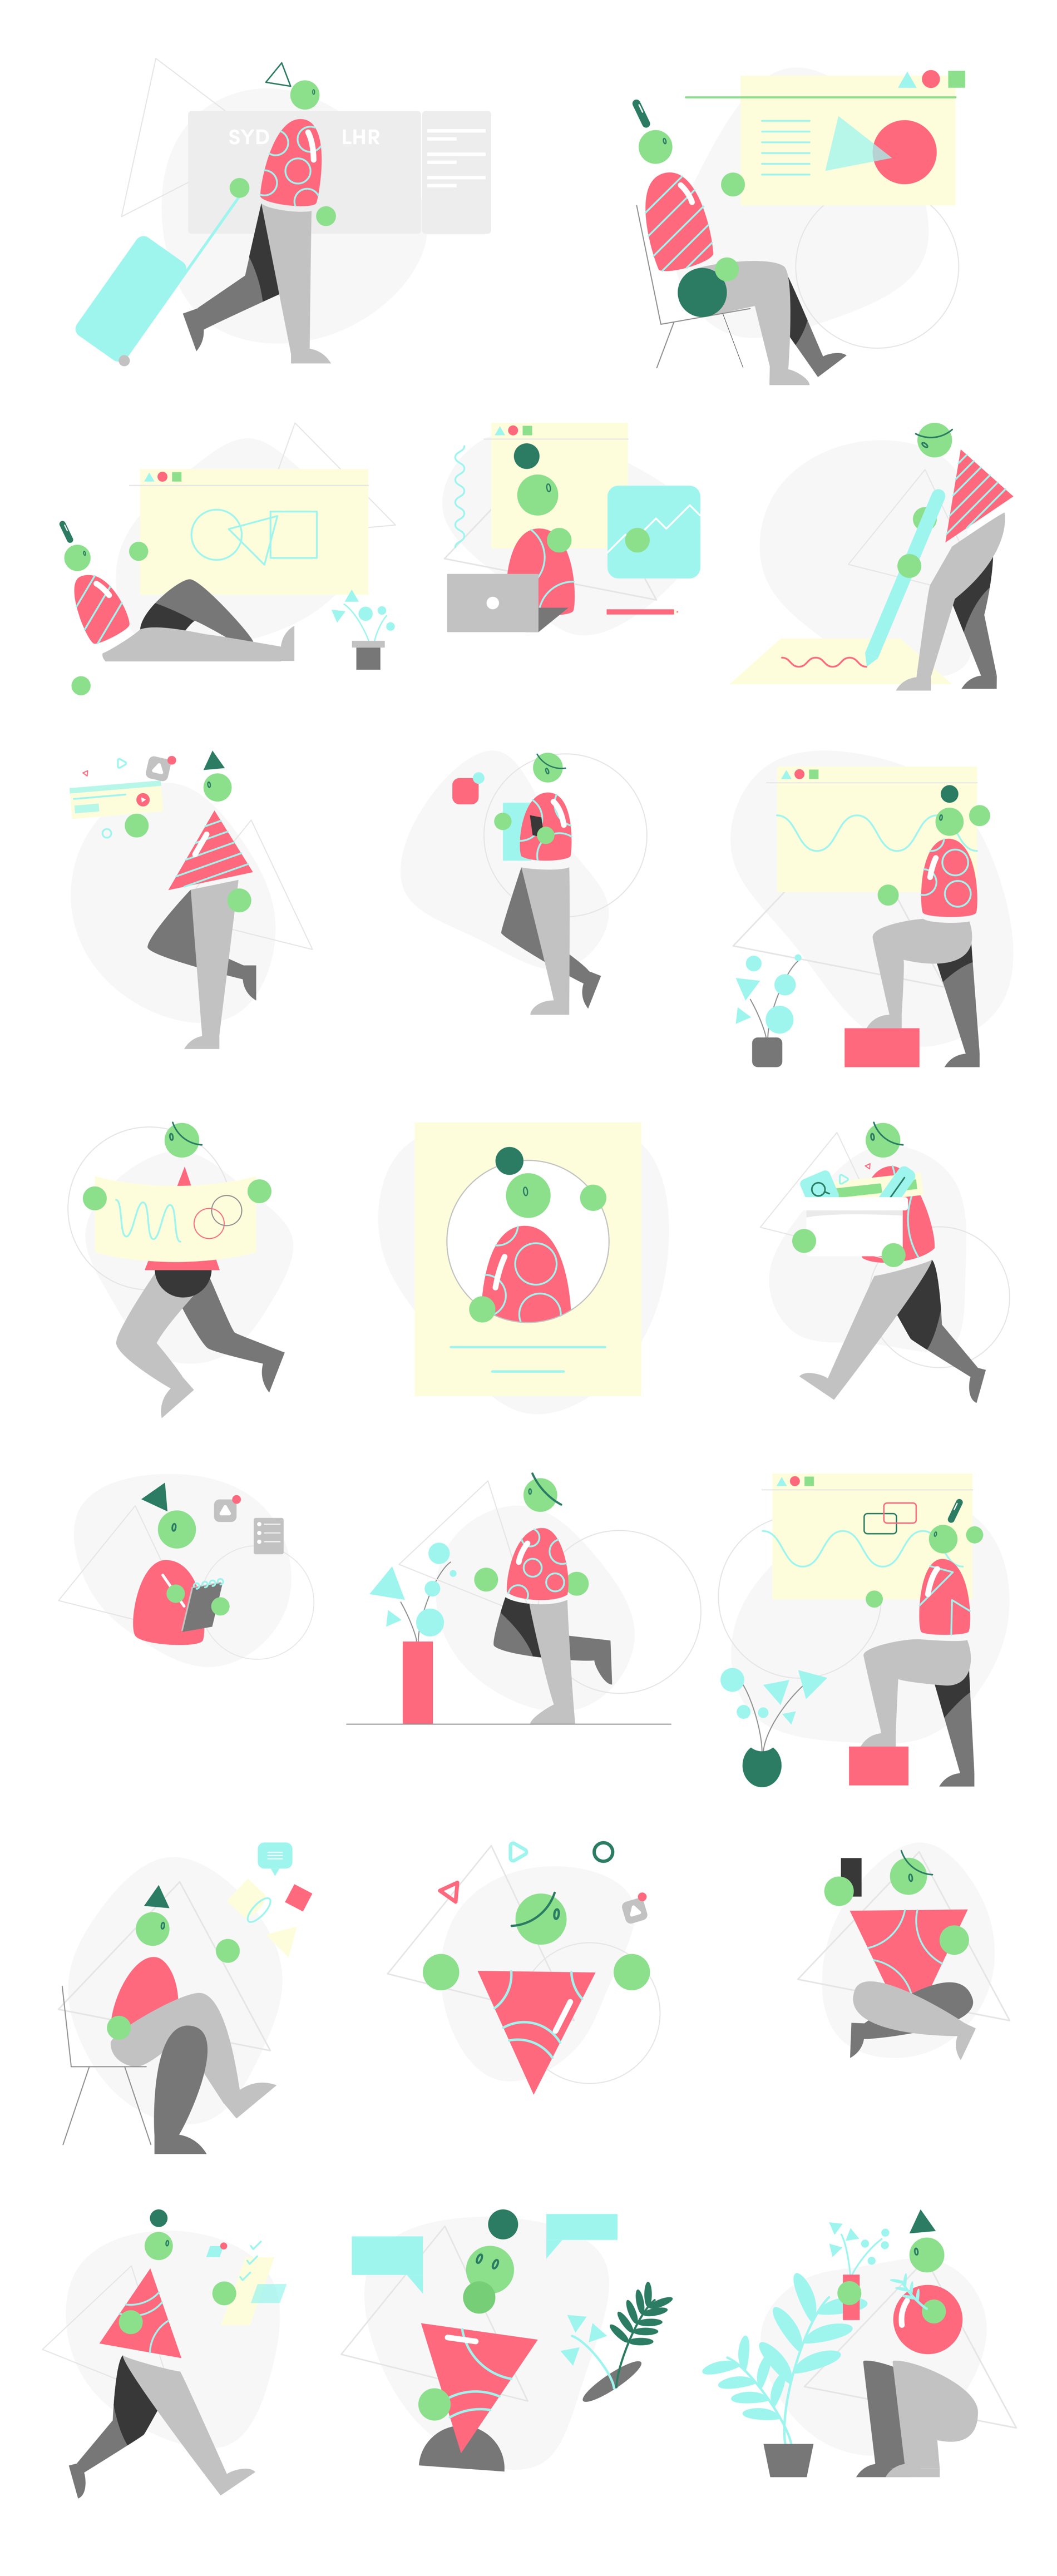 Watermelon Free Illustrations - 20 creative, abstract illustrations featuring interesting characters and motions, ready to make your next startup, website, or project shine. Every illustration in this pack is a 100% vector SVG and can be scaled to any size. Everything can be customised, from colour, to layouts, to backgrounds, scenes, devices, characters, and more, using any vector editing program.